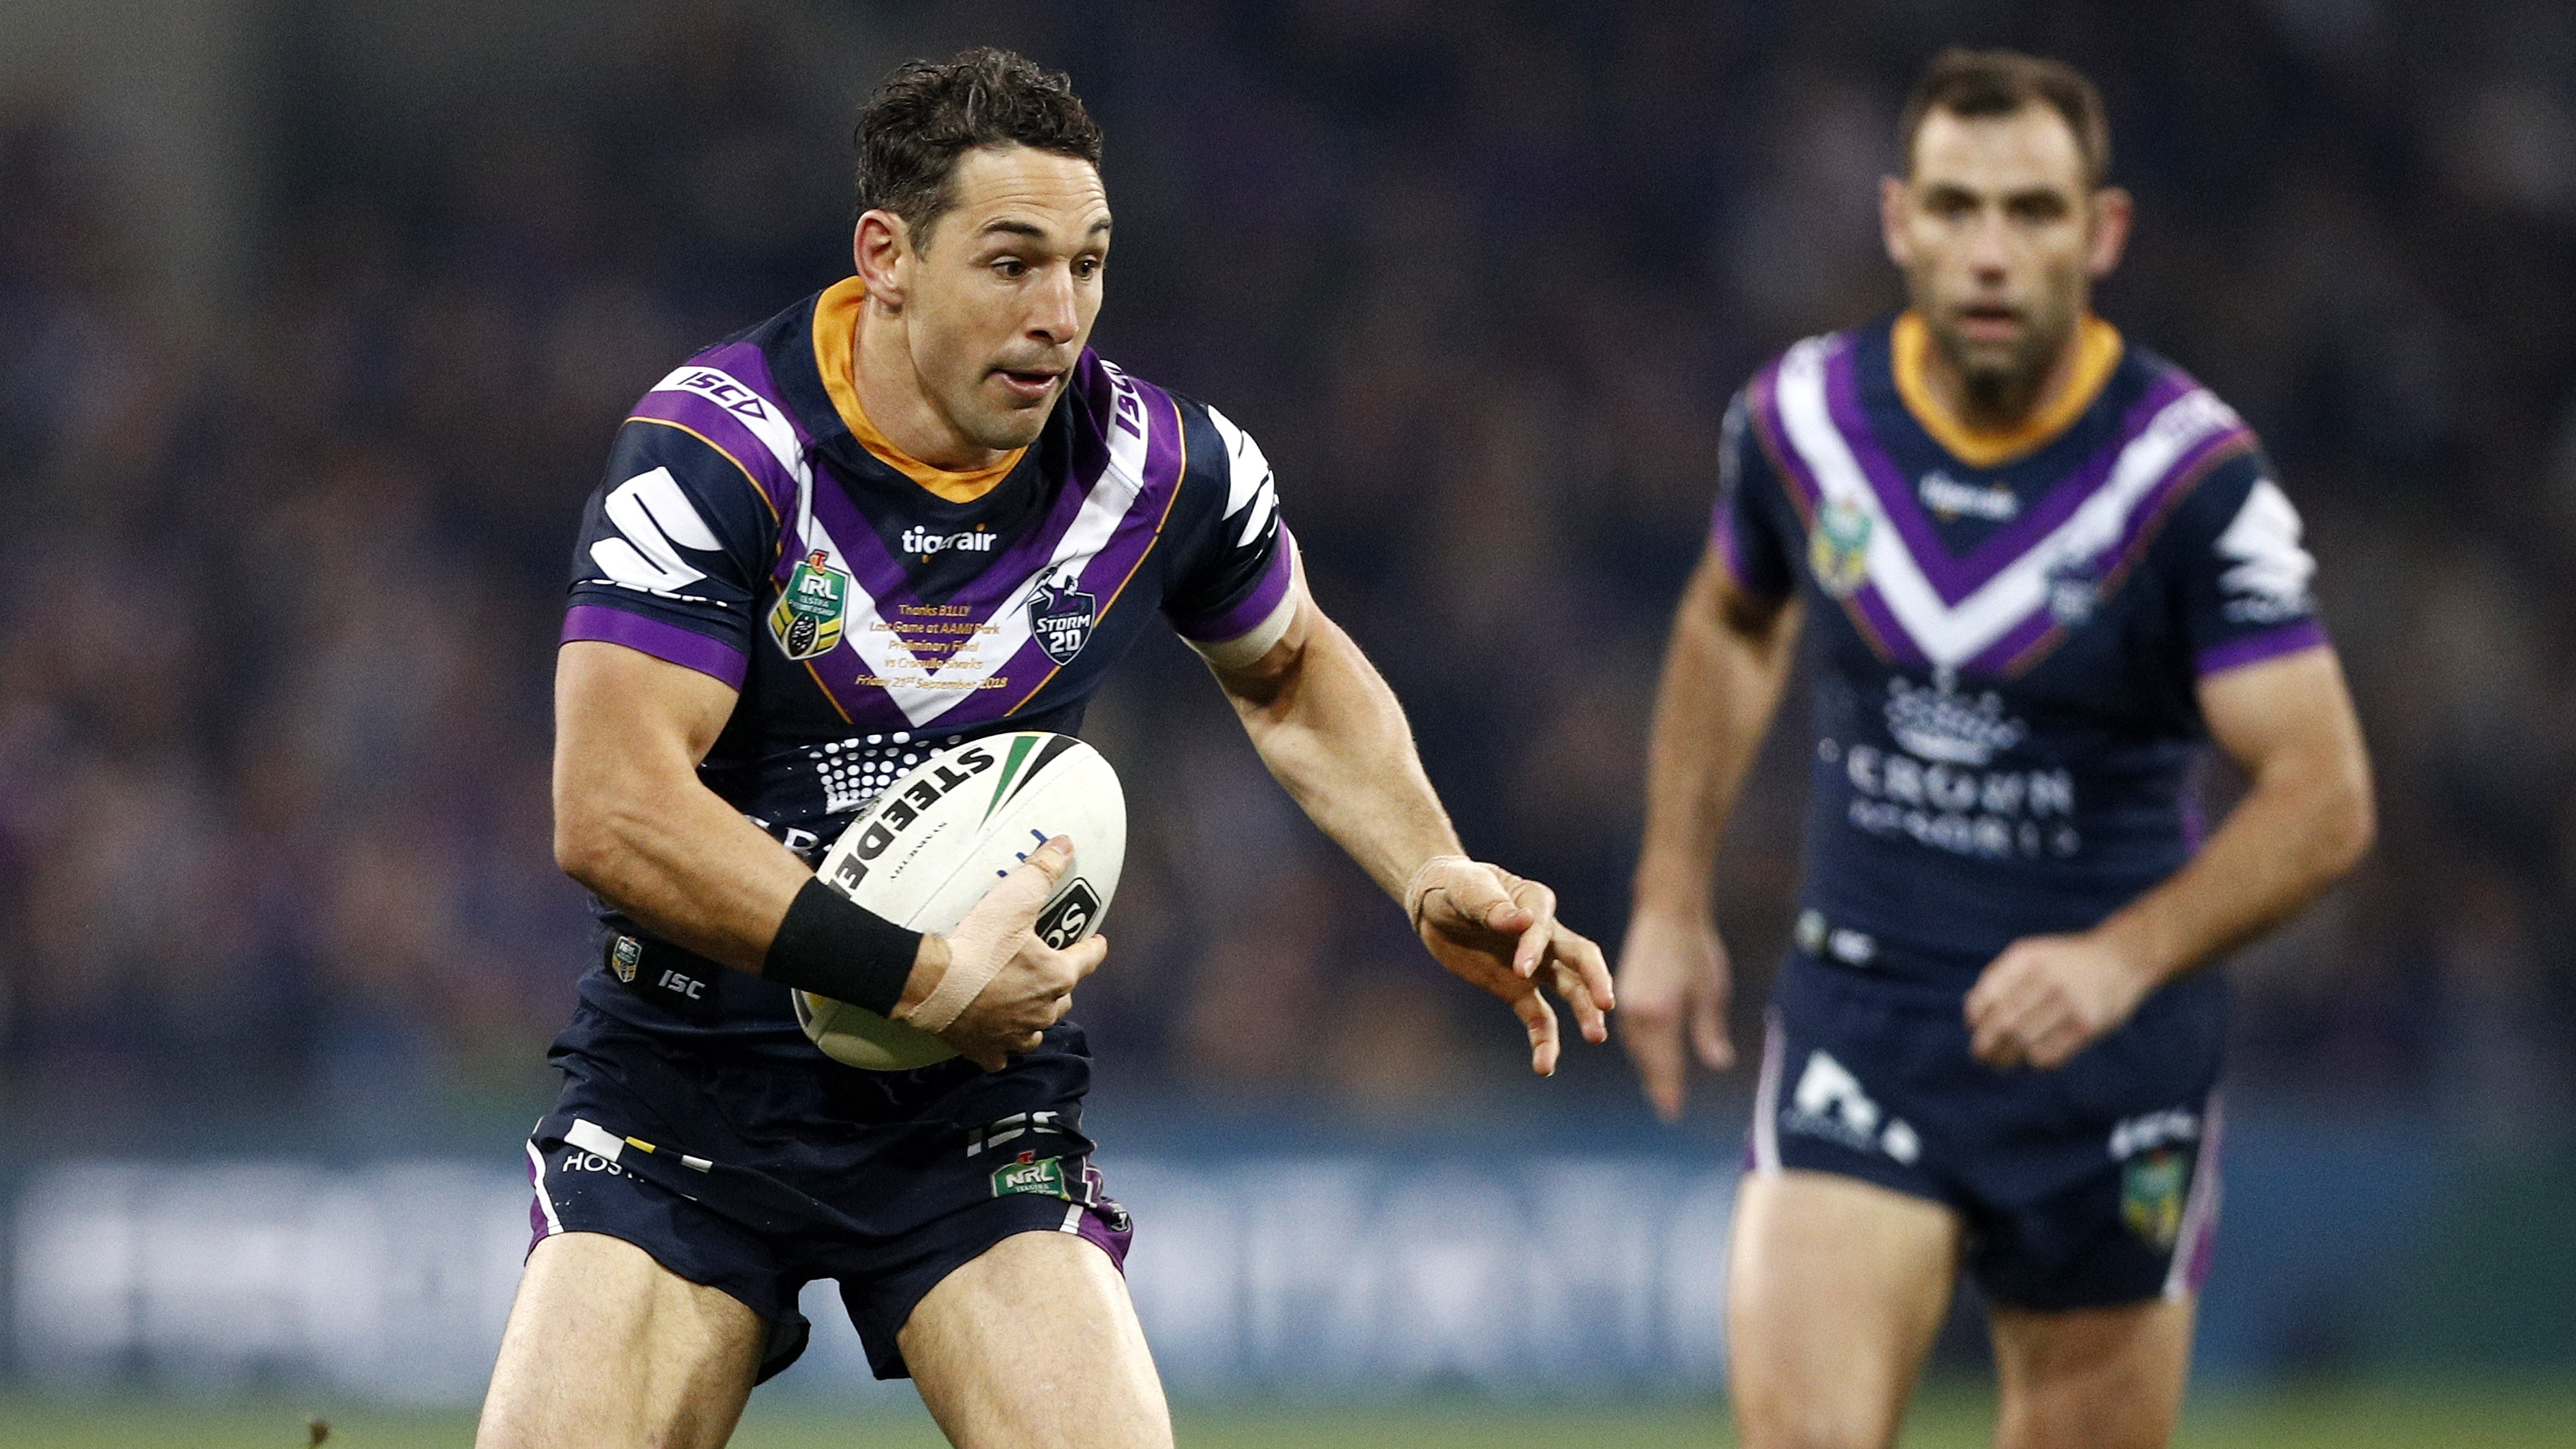 Billy Slater's final home game